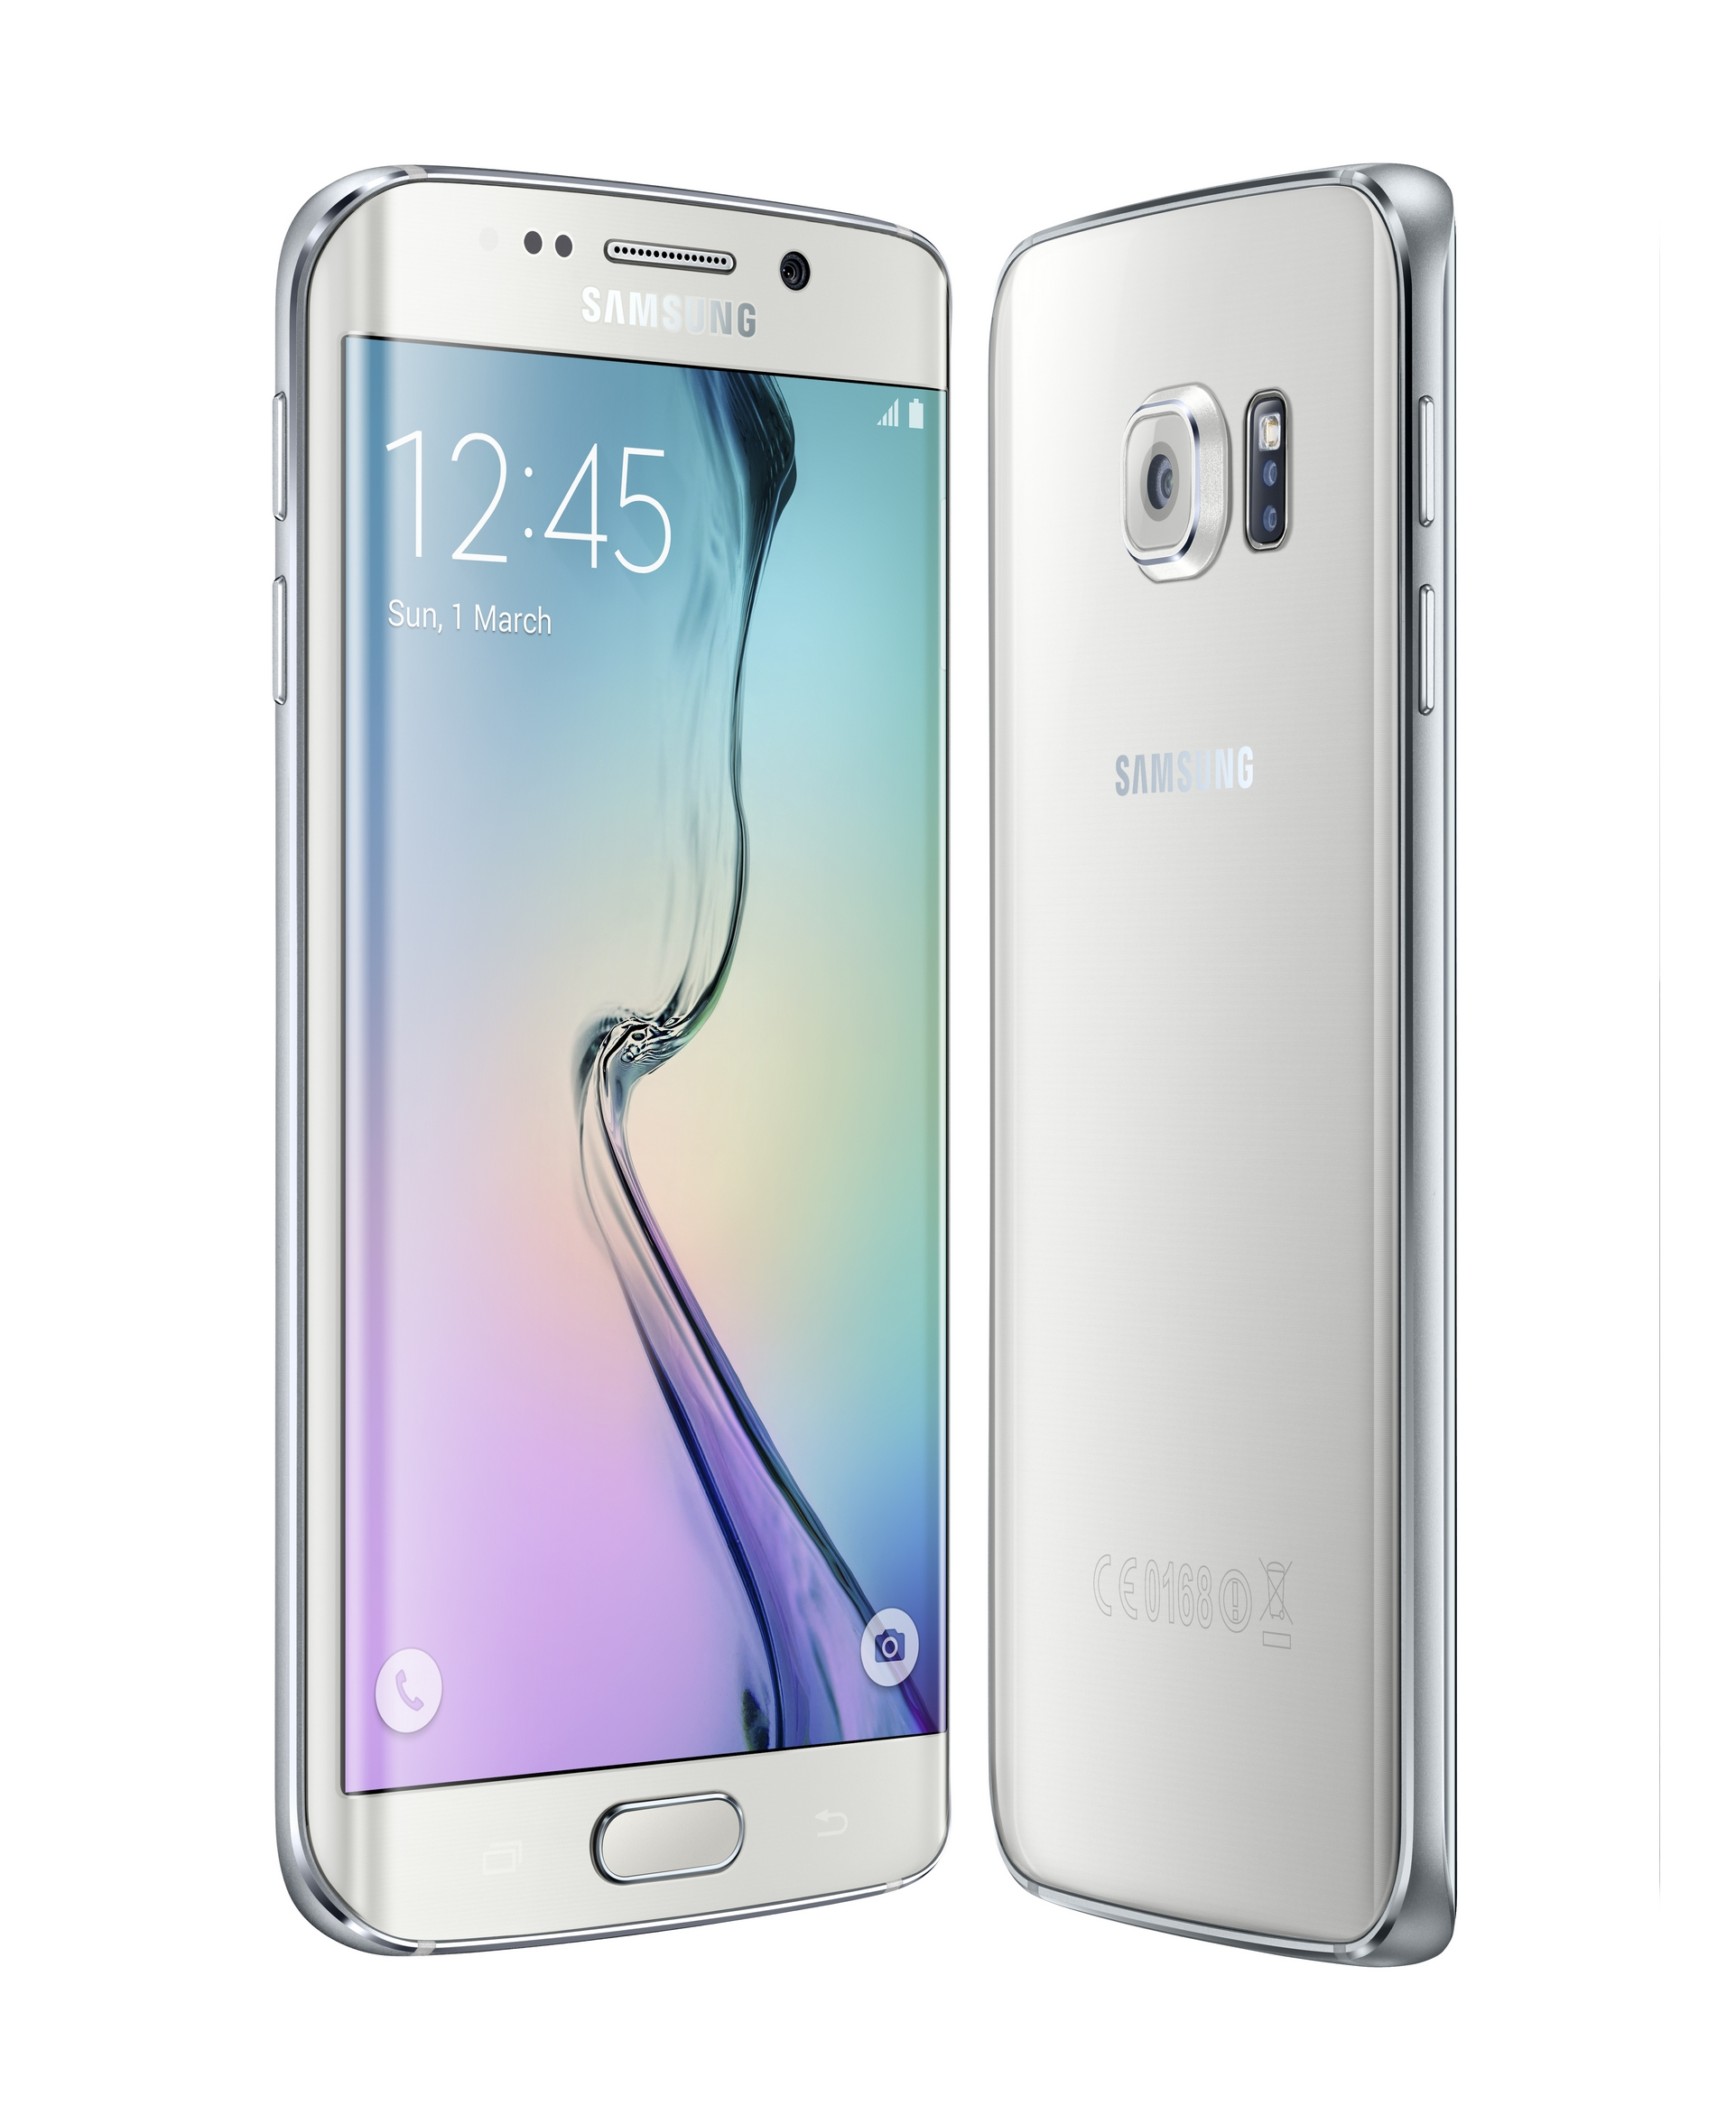 Samsung Galaxy S6 Edge (3)